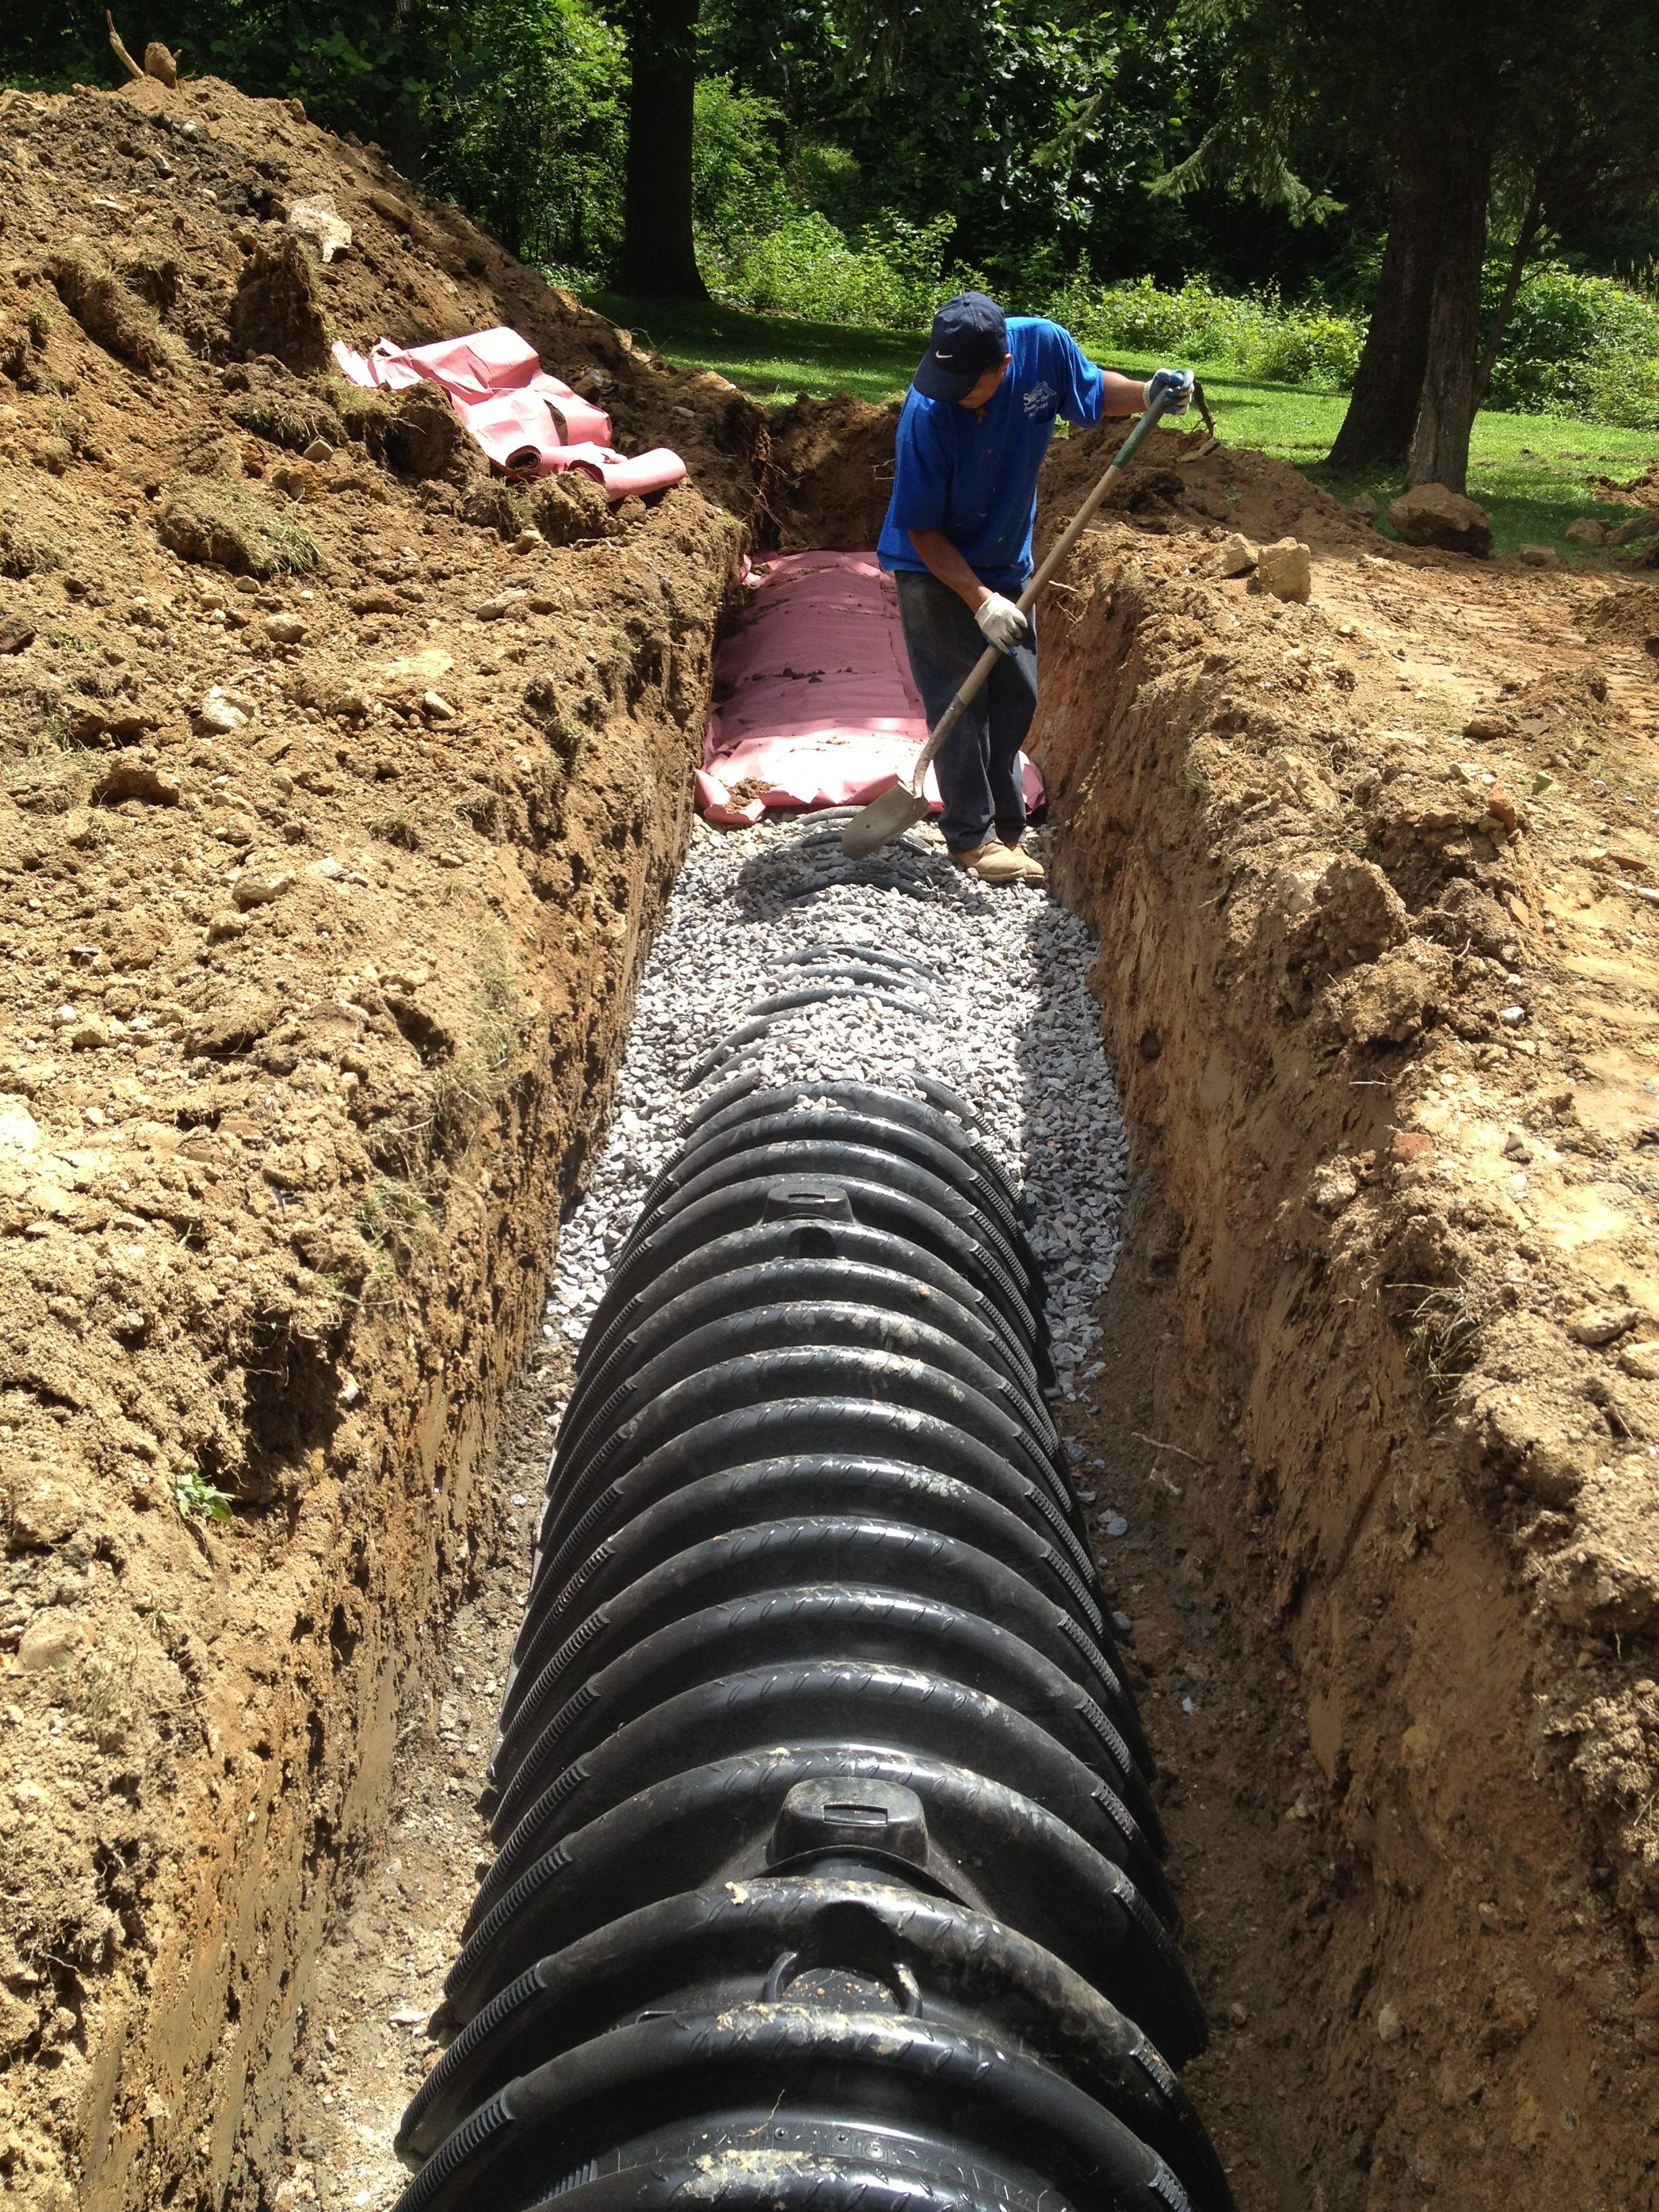 All Septic Repair And Installation Skills Require Years To